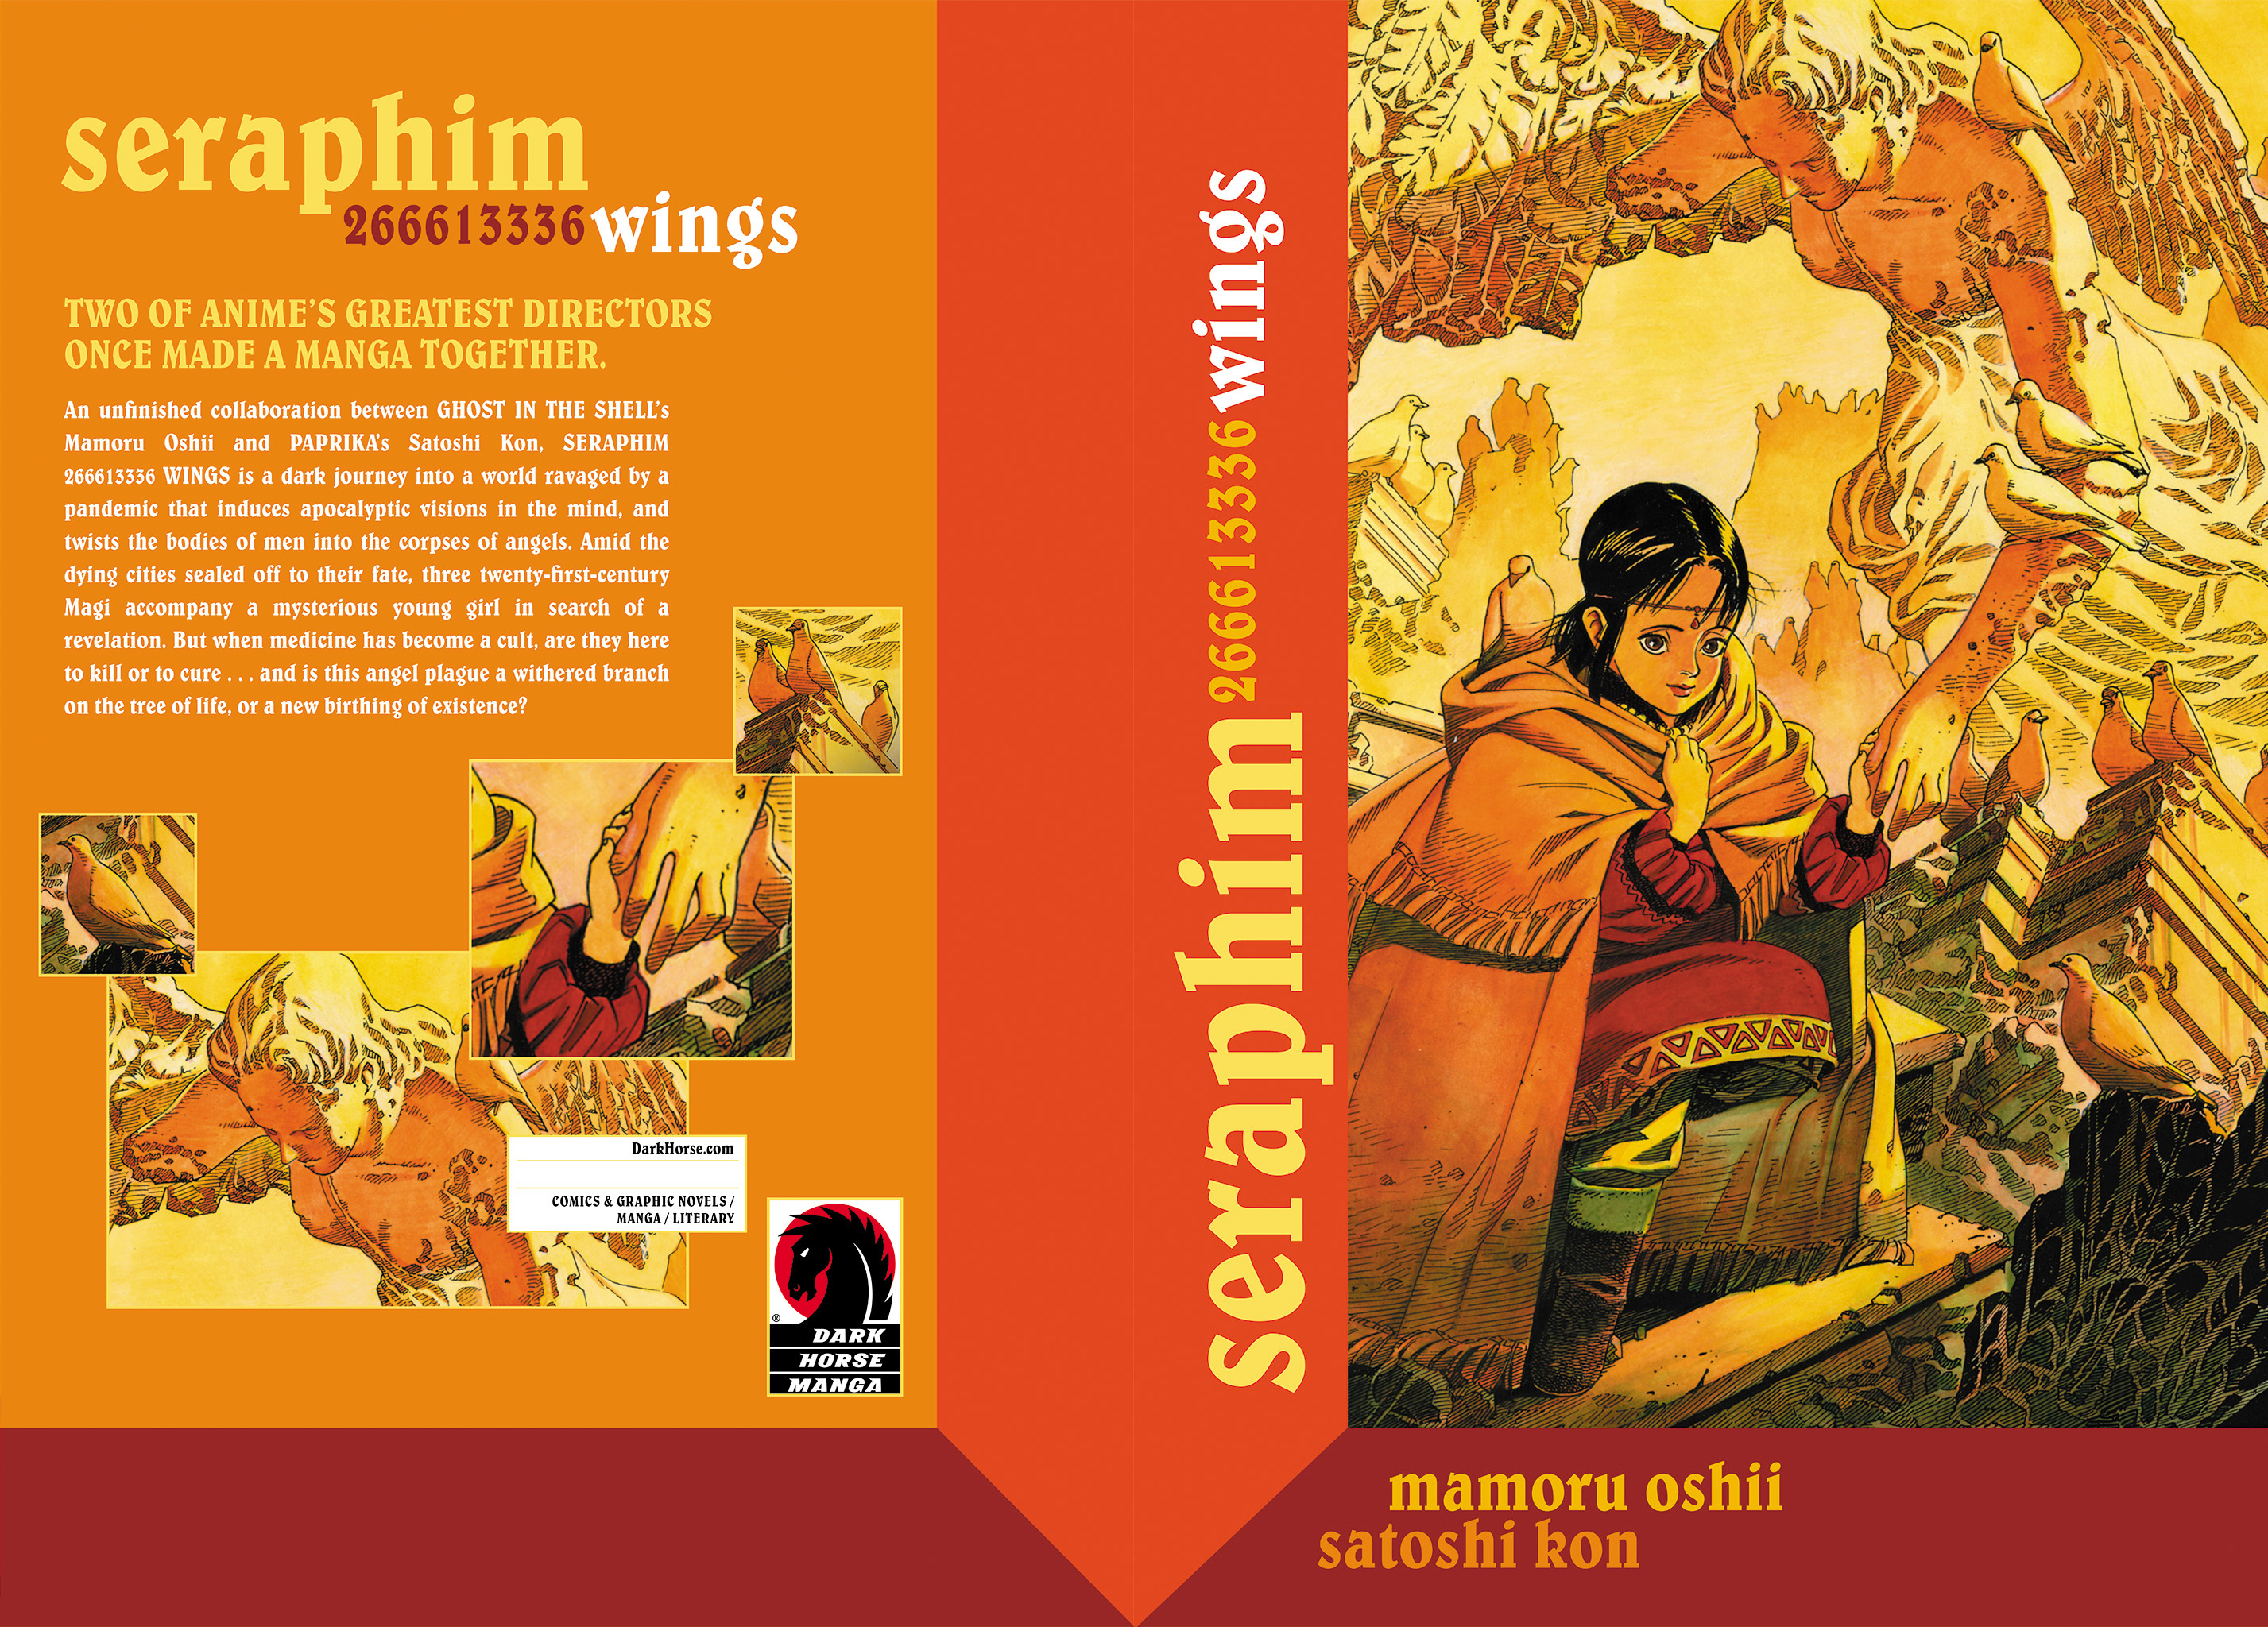 Read online Seraphim 266613336 Wings comic -  Issue # TPB - 265